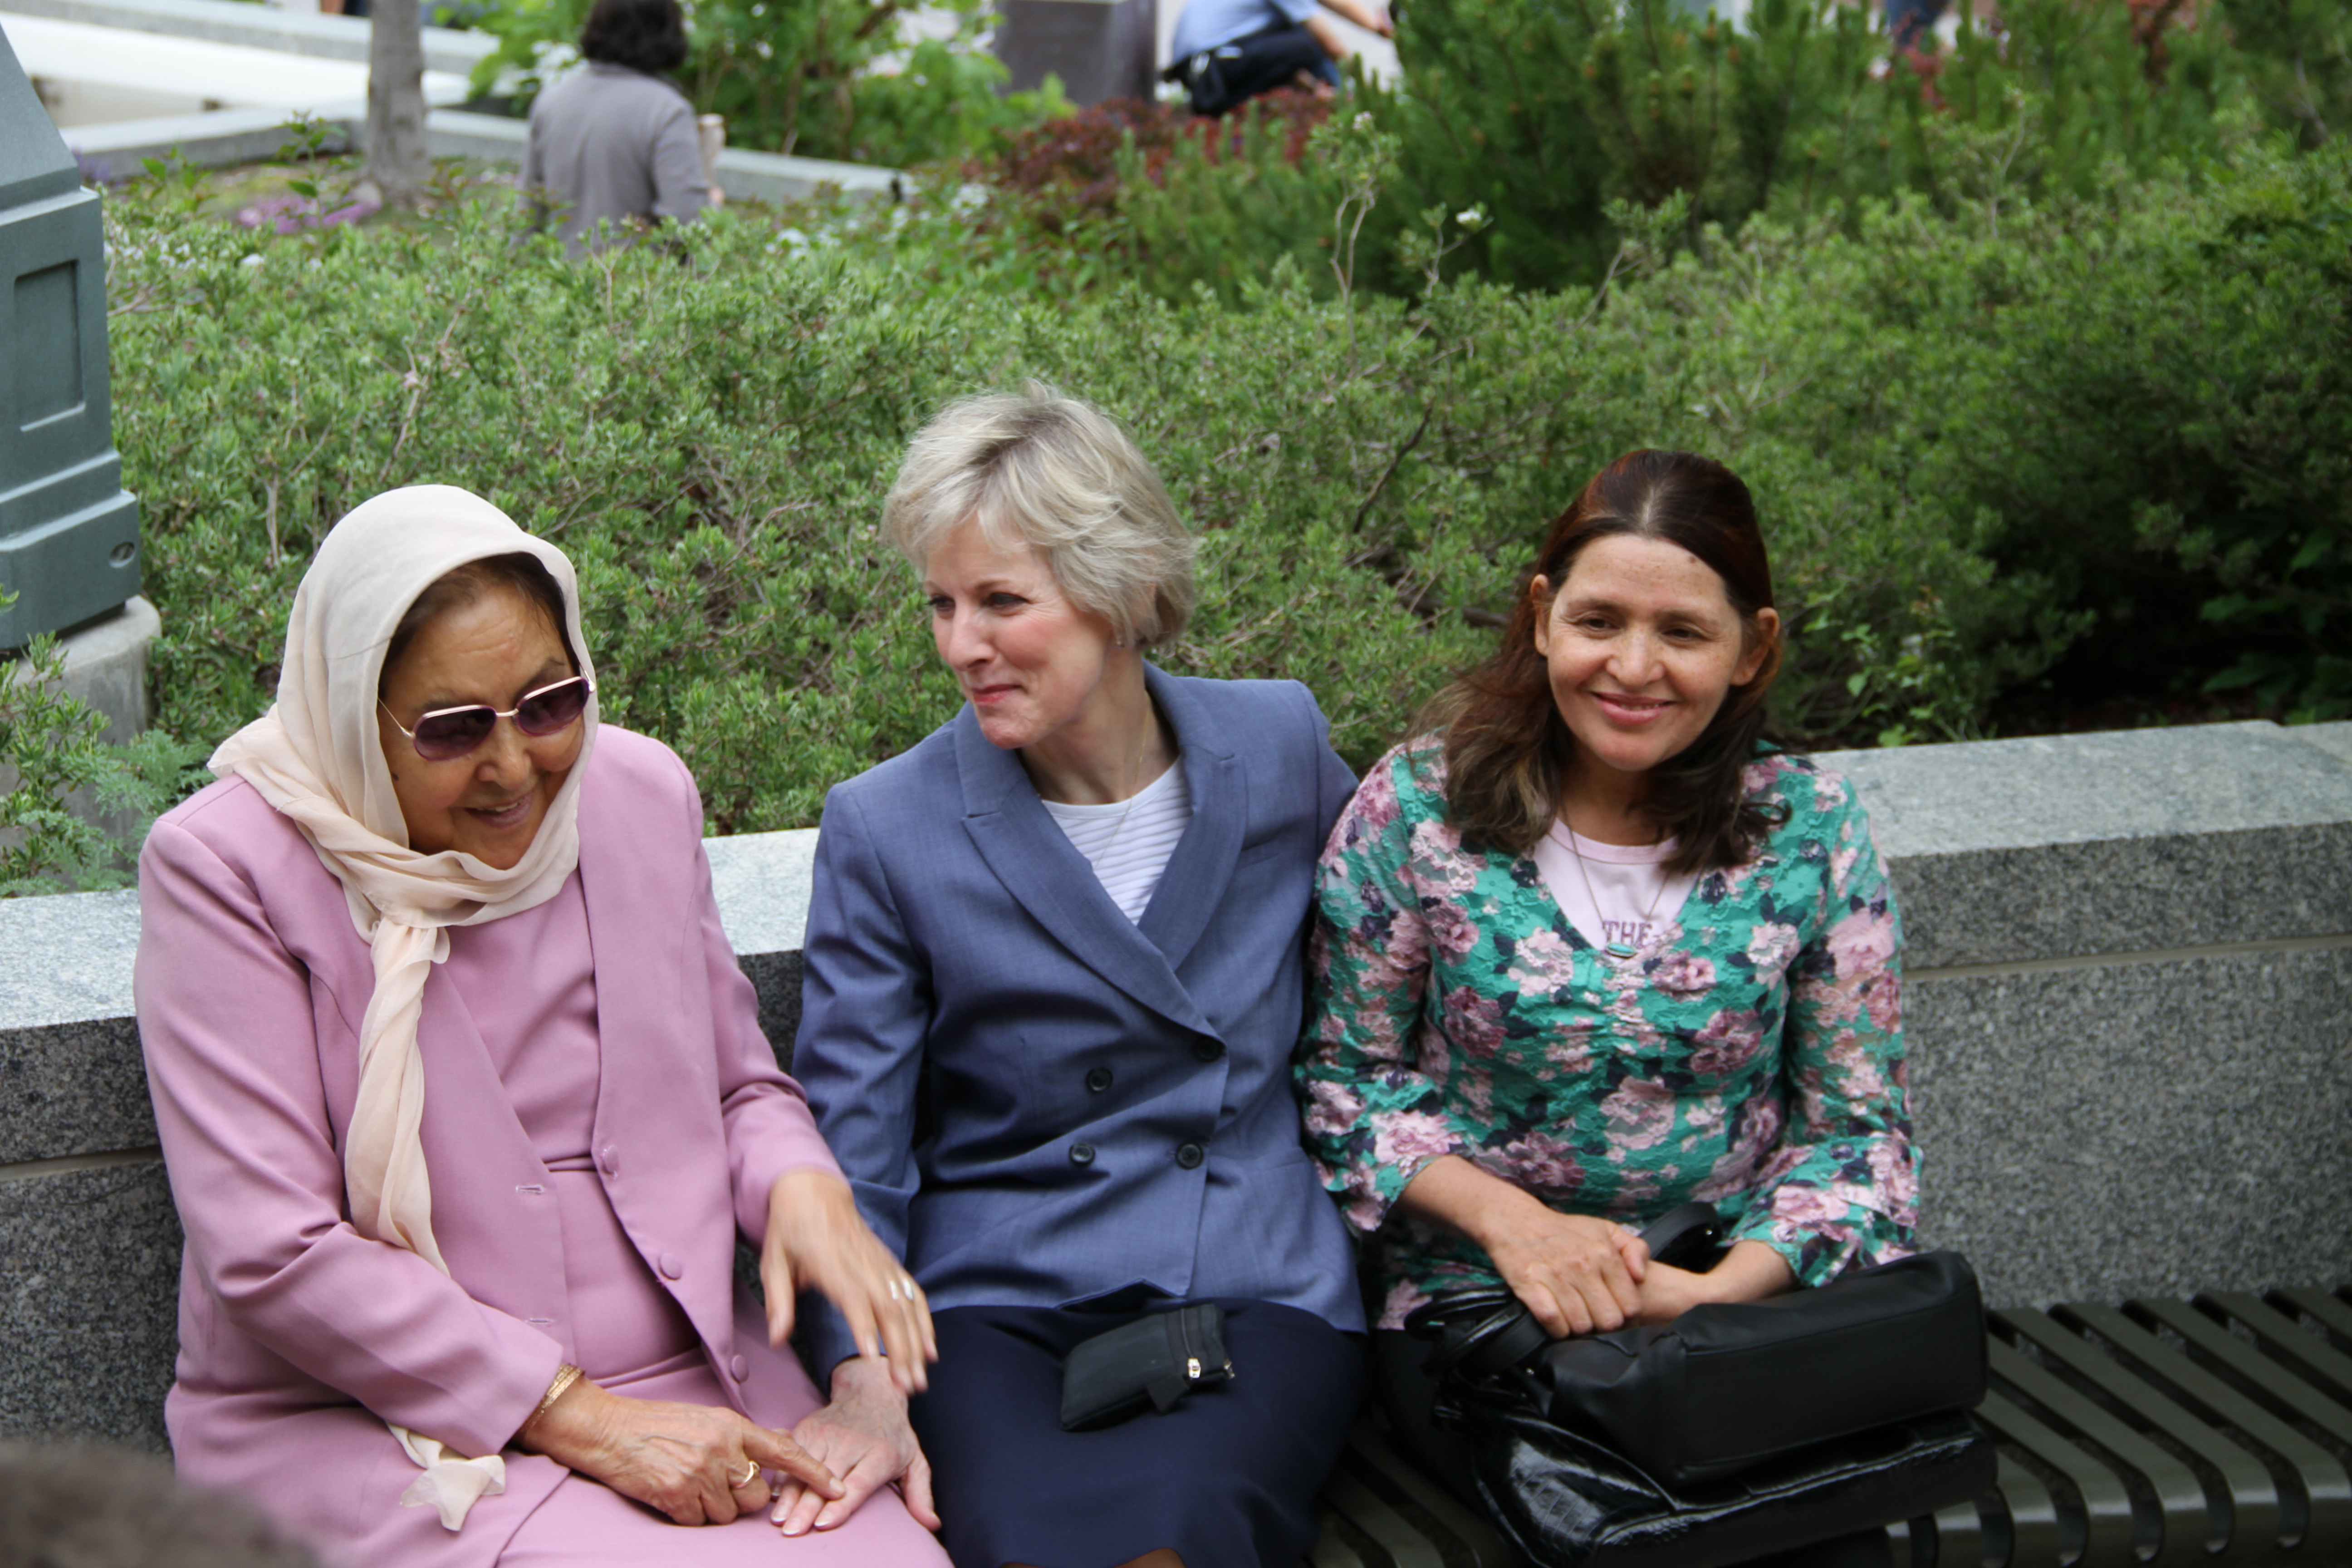 Sister Jean B. Bingham sits outside on Temple Square with Asifa Nadir, left, and Nadira Nadir, right, while being filmed by Lucian Perkins from USA for UNHCR on May 16, 2019. Sister Bingham has known the Nadir family, refugees from Afghanistan for nearly 15 years.